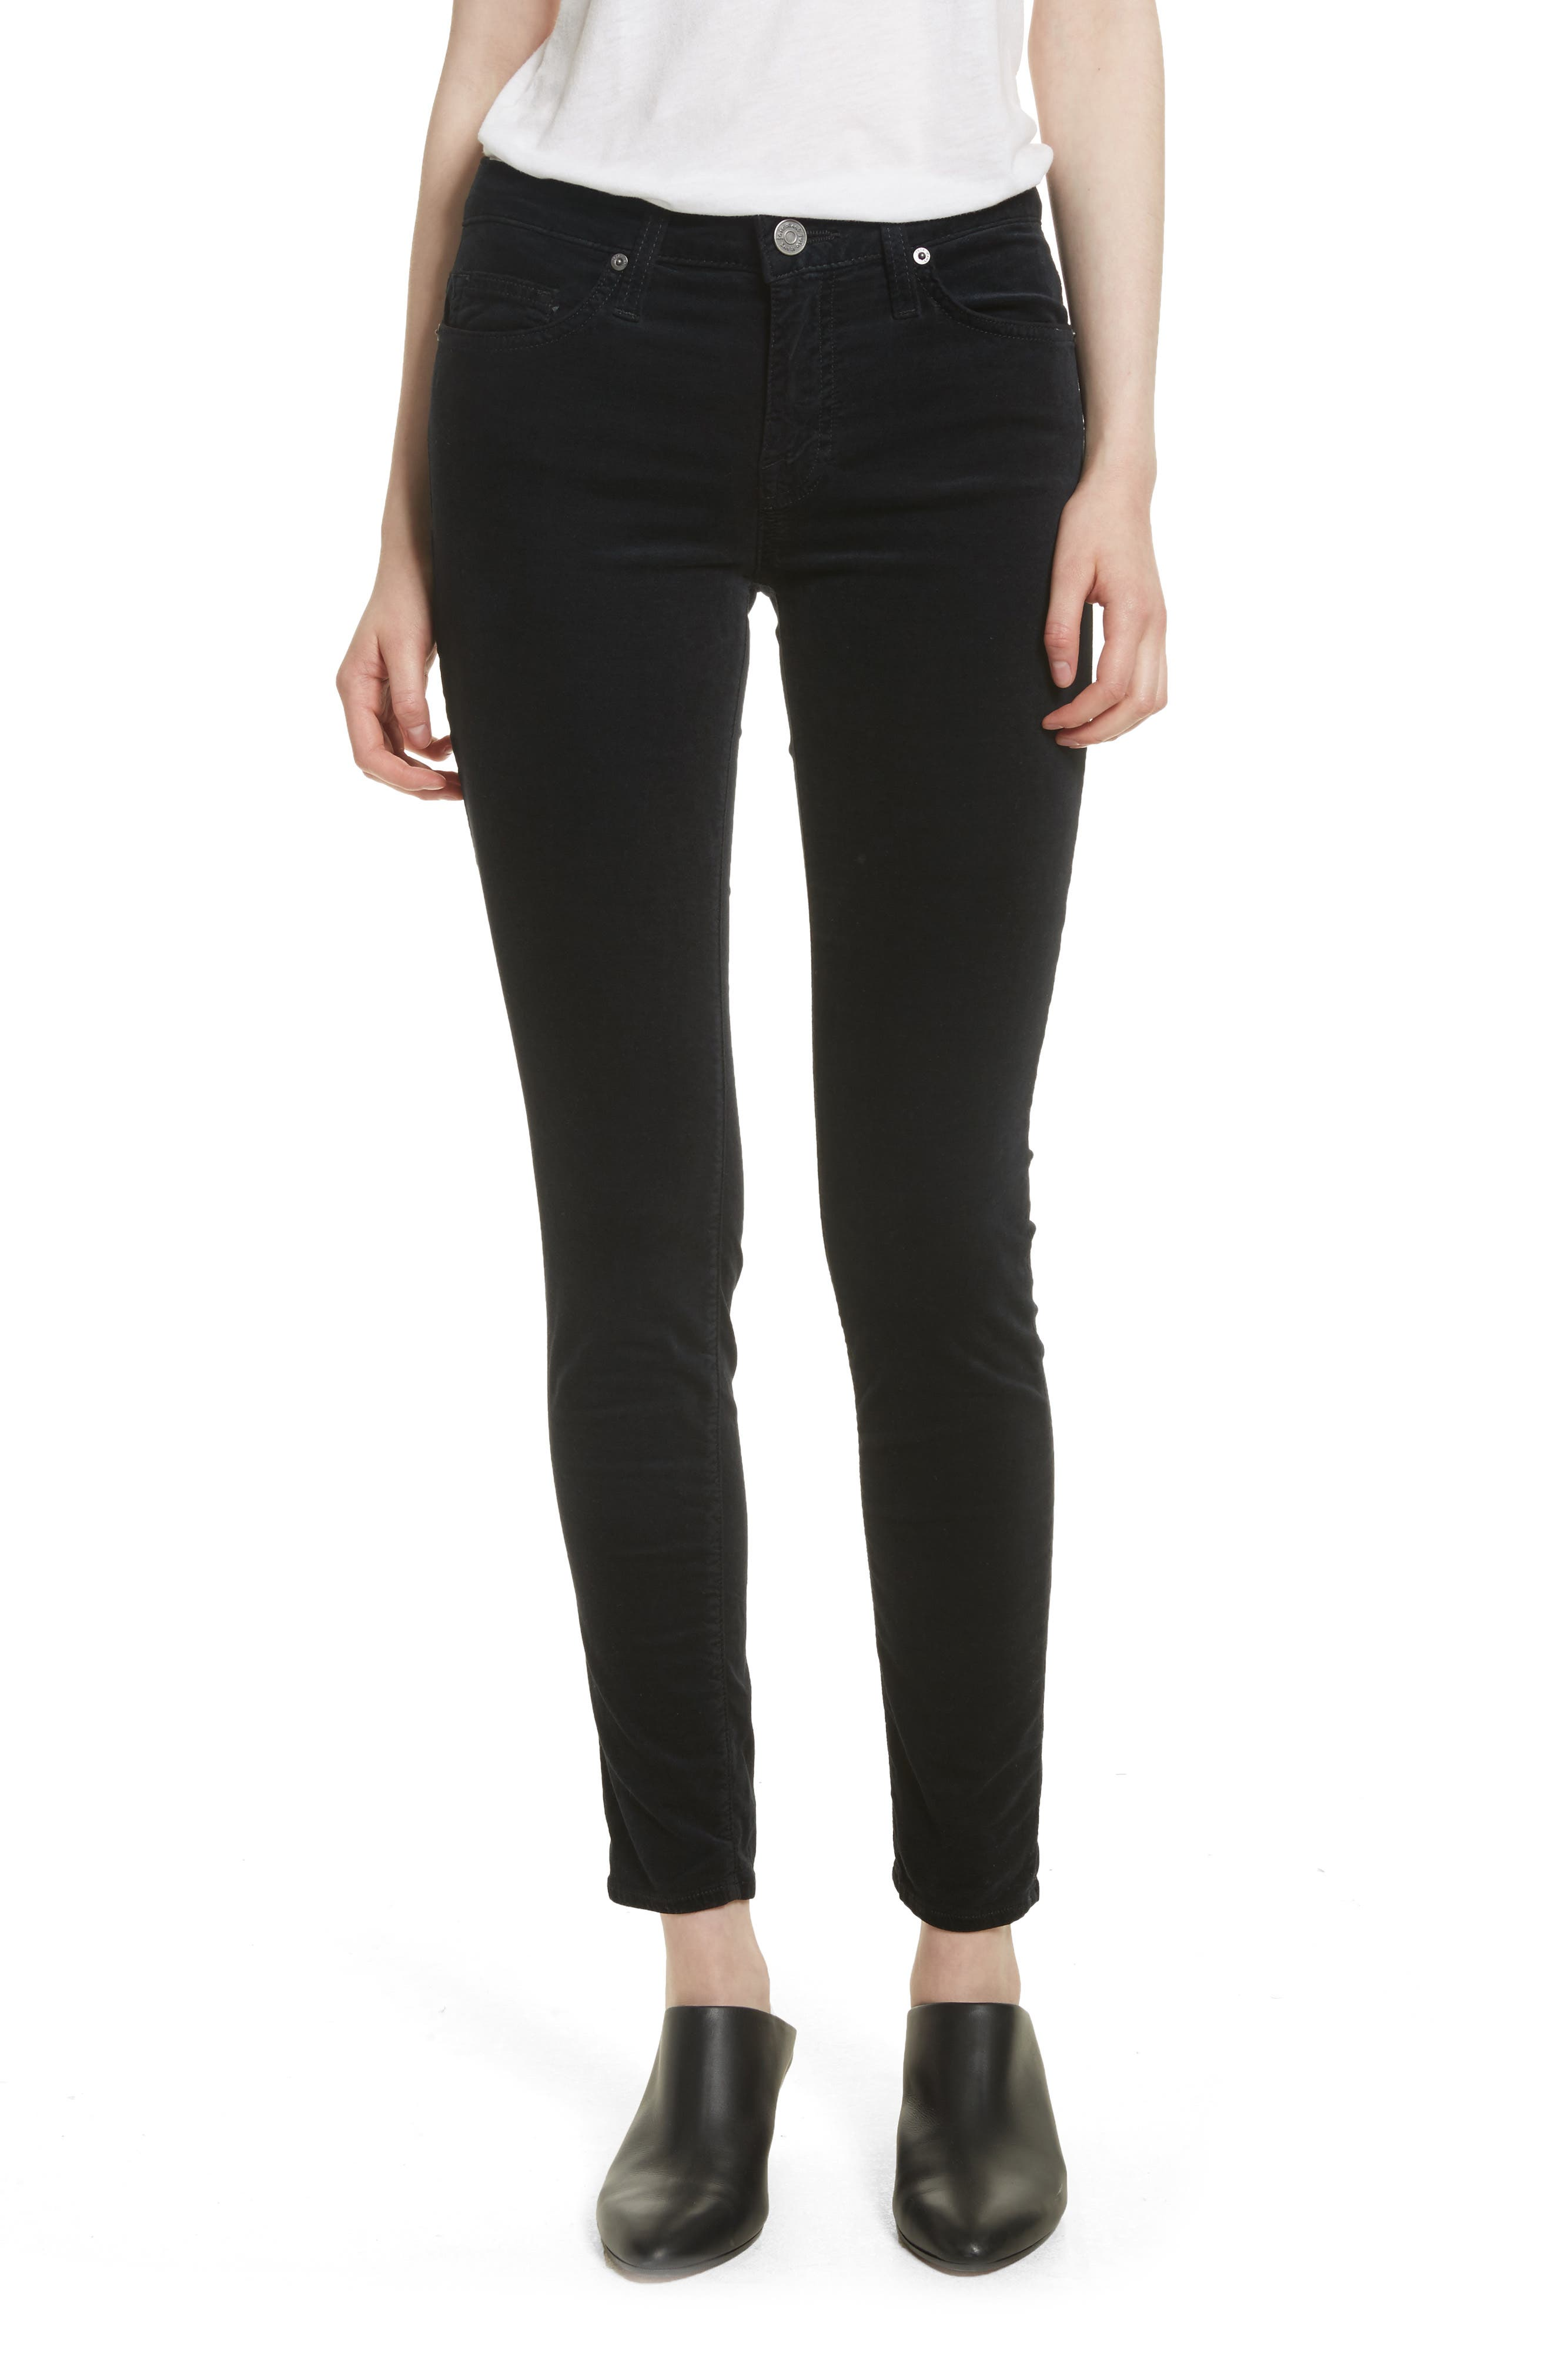 Alternate Image 1 Selected - Joie Mid-Rise Skinny Jeans (Caviar)